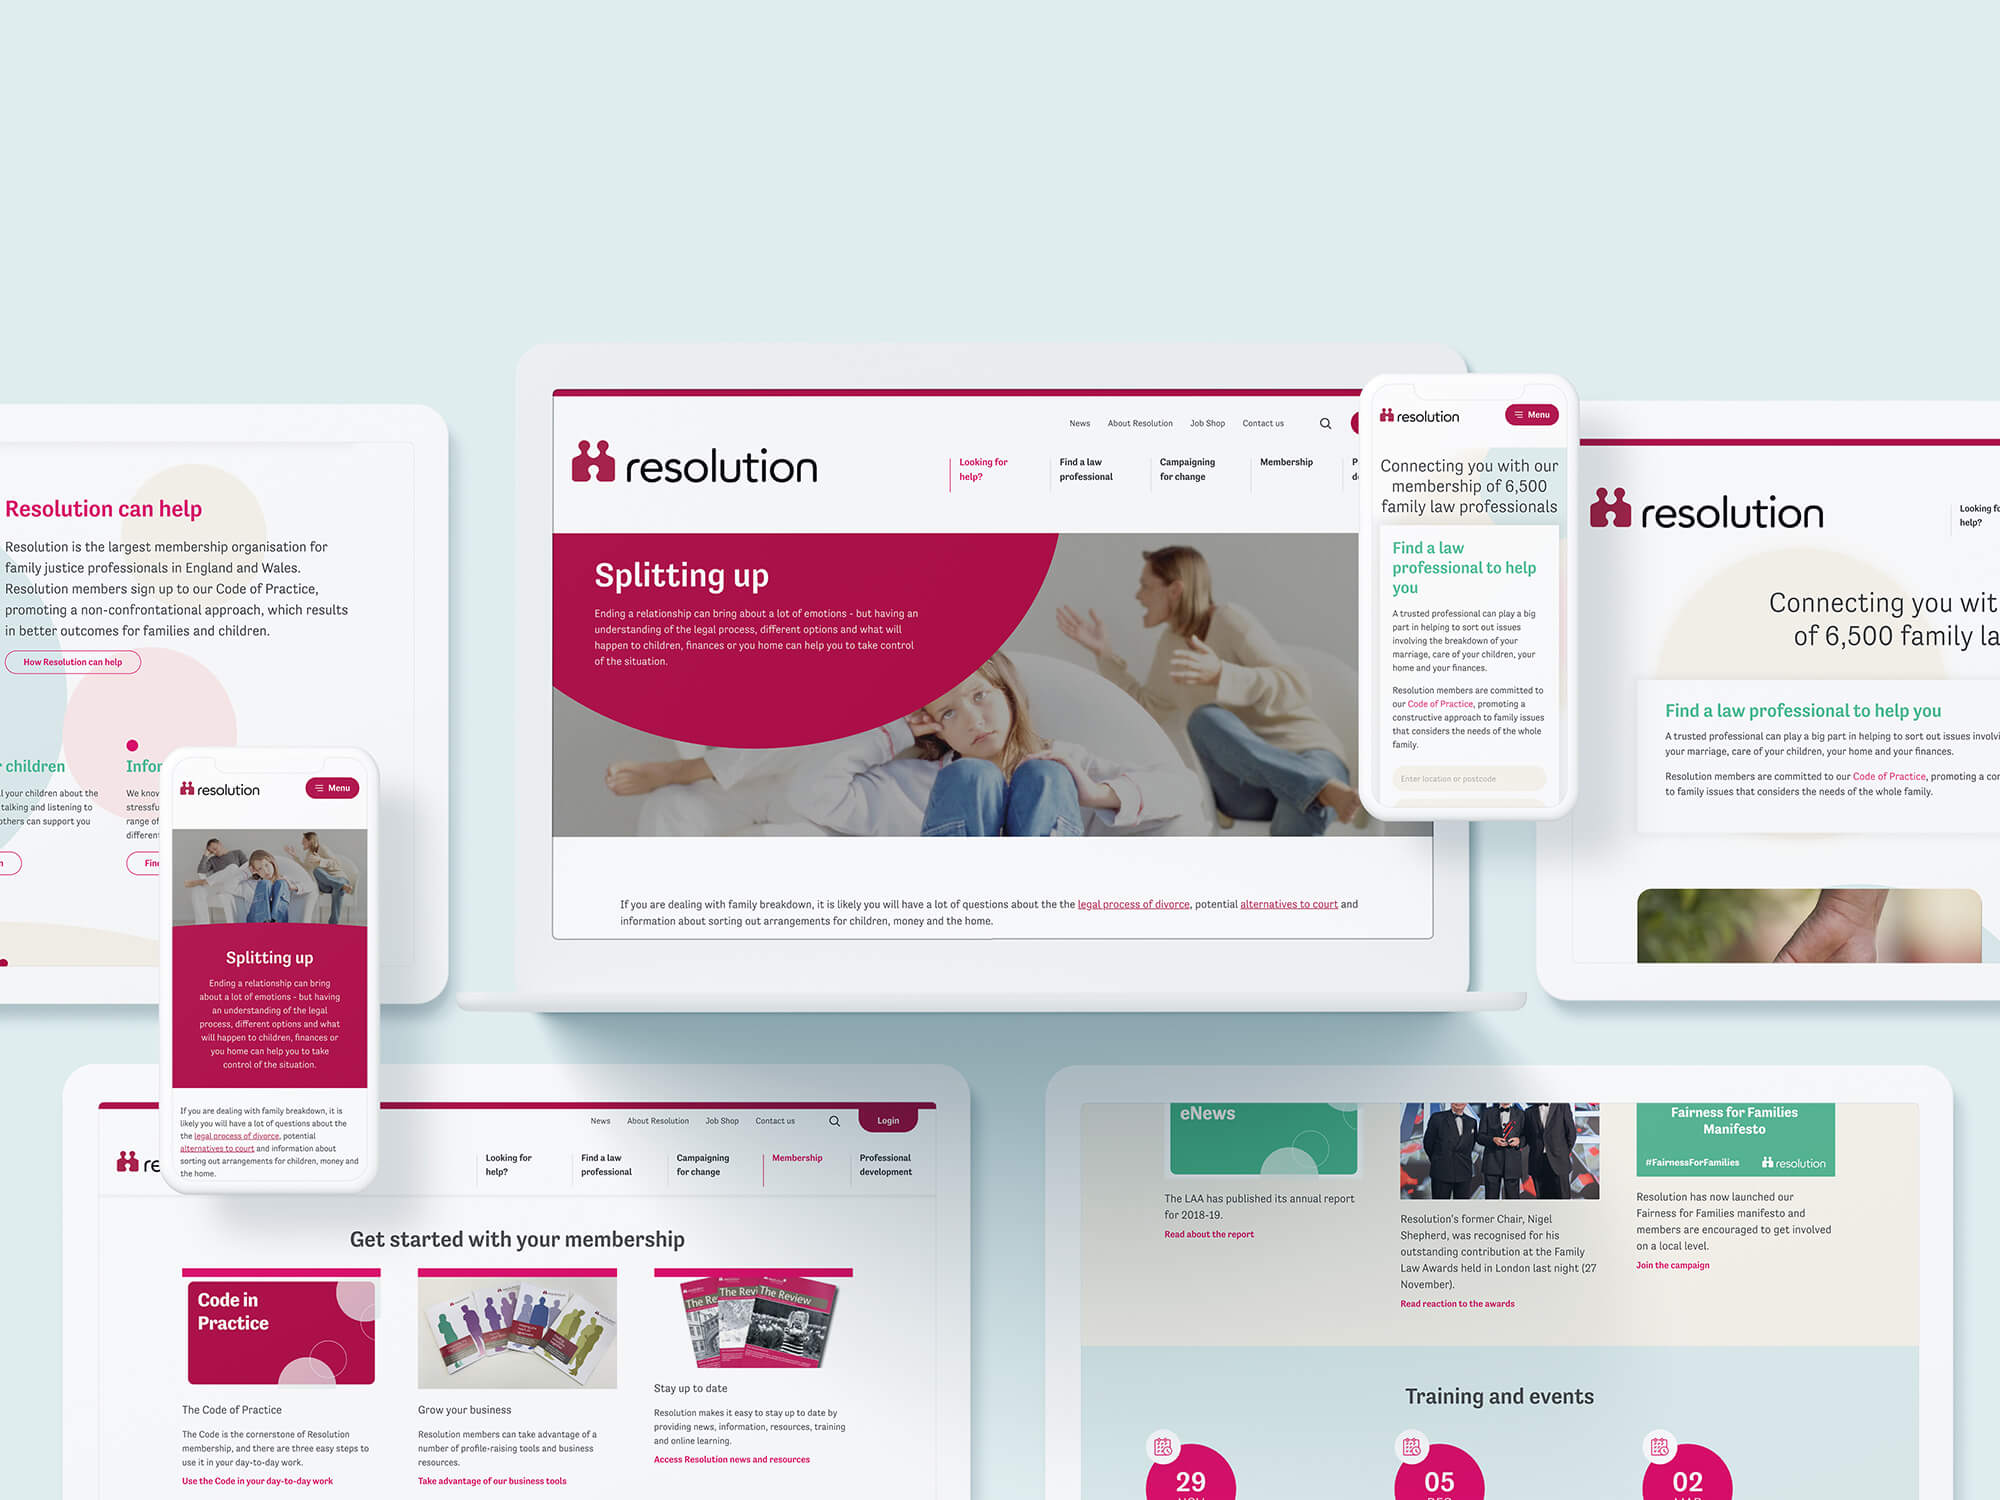 Key landing pages from Resolution's new site